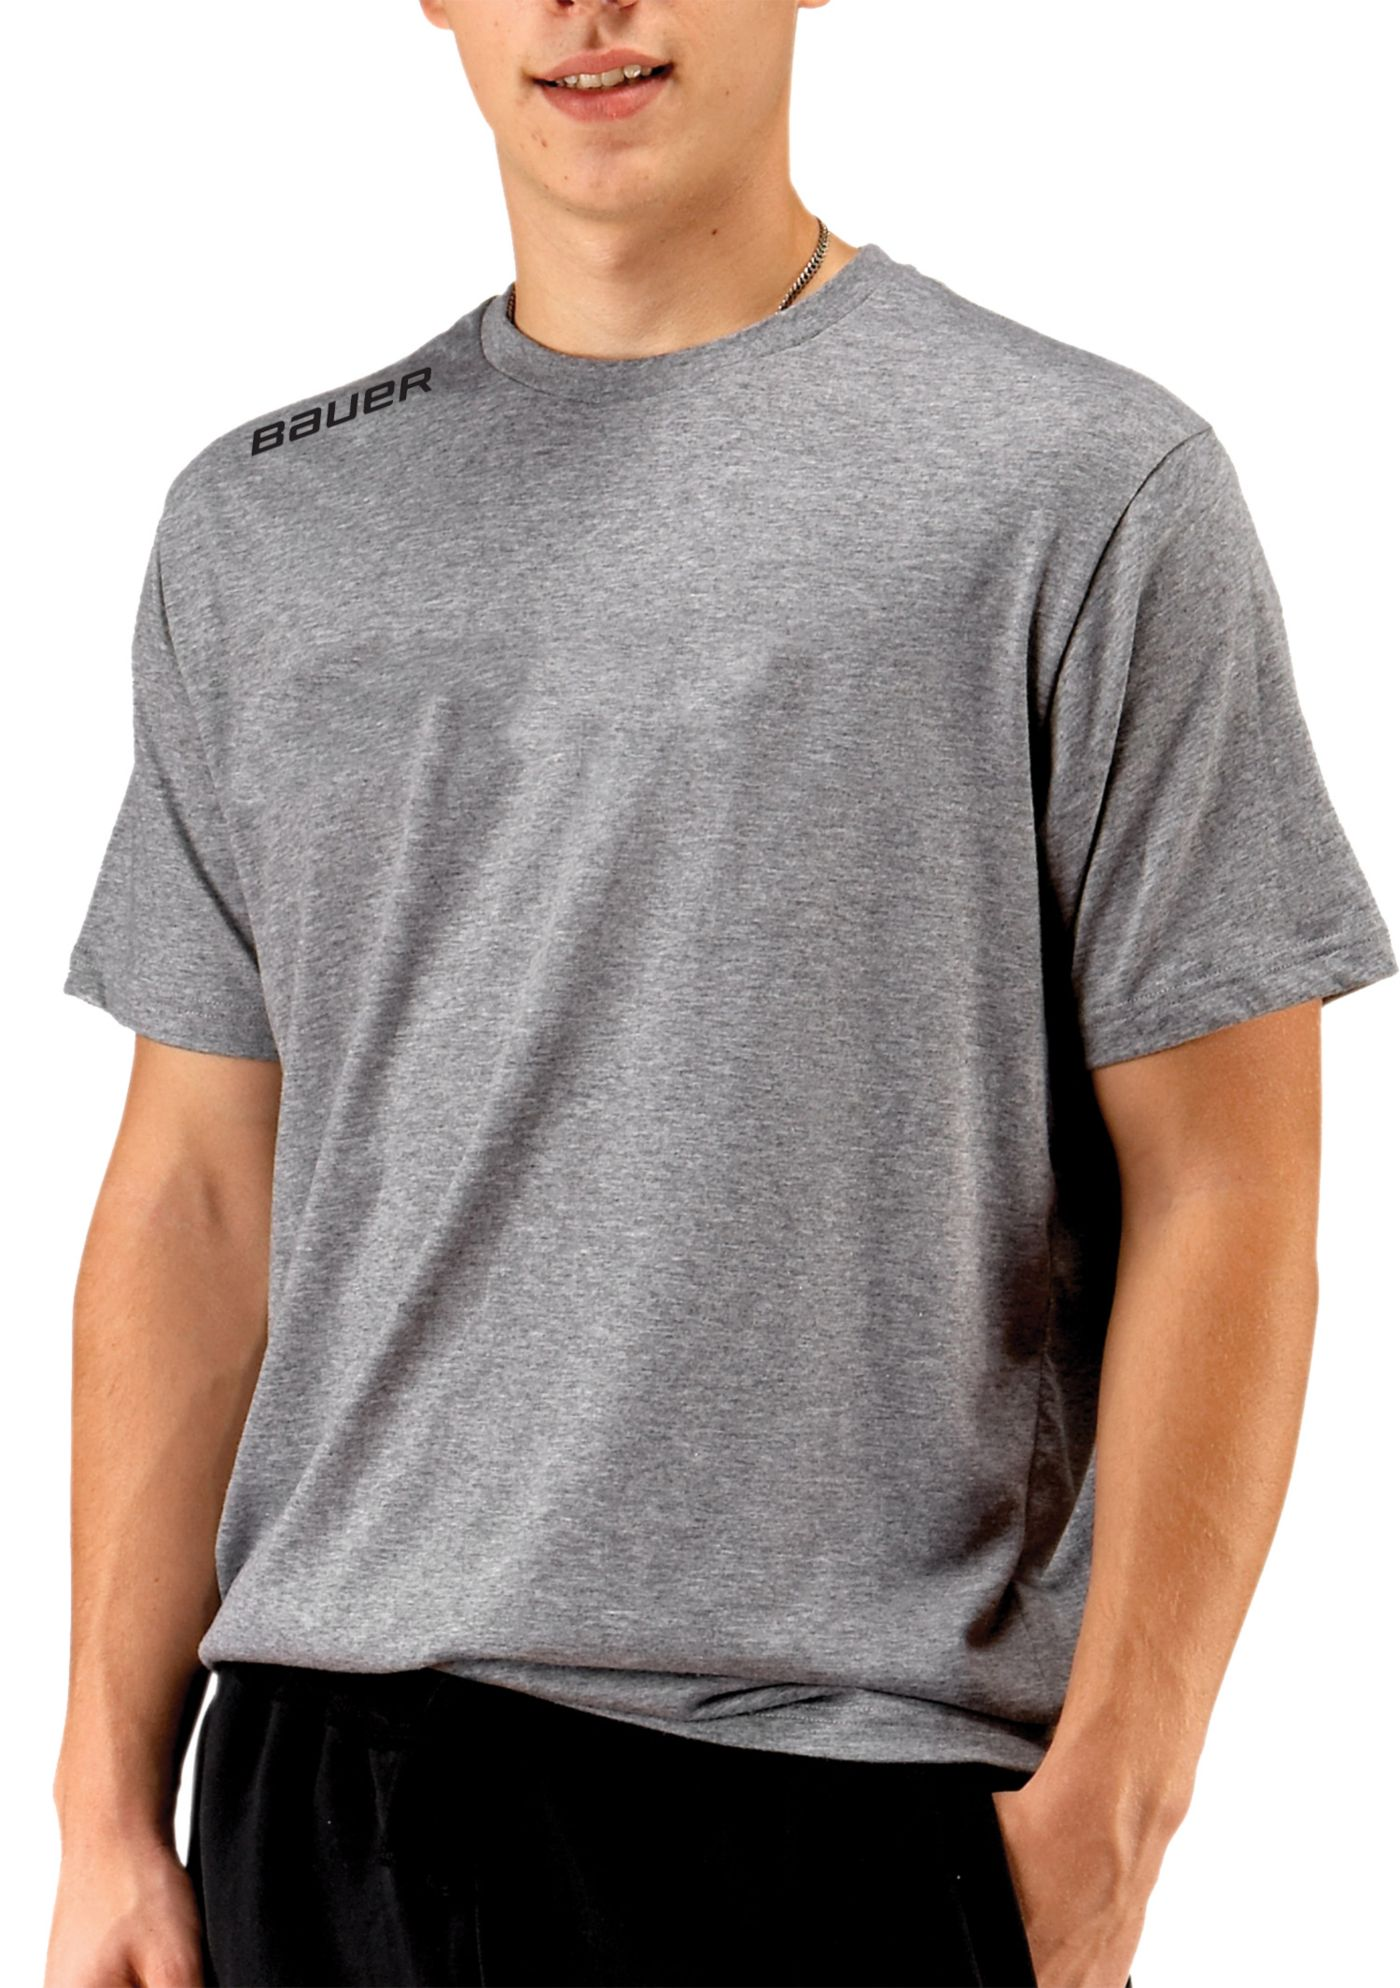 Bauer Youth Core SS Team T-Shirt